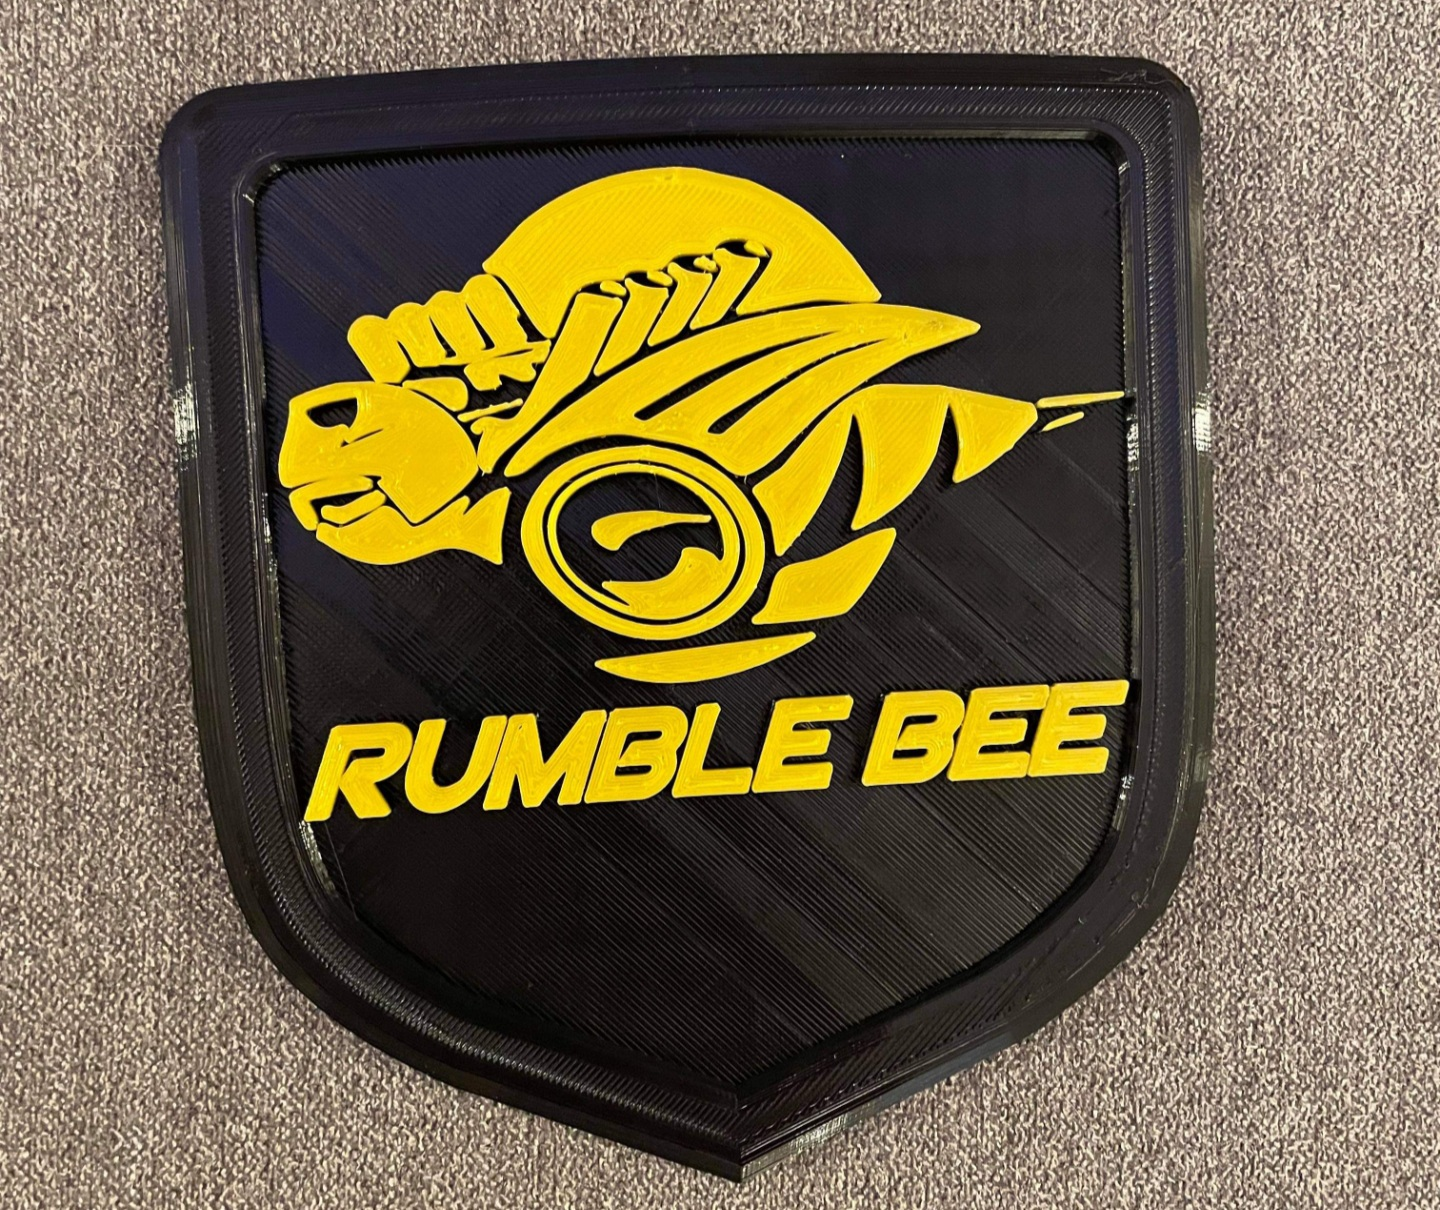 """Rumble Bee"" 3D Printed Tailgate Shield Emblem Dodge Ram"